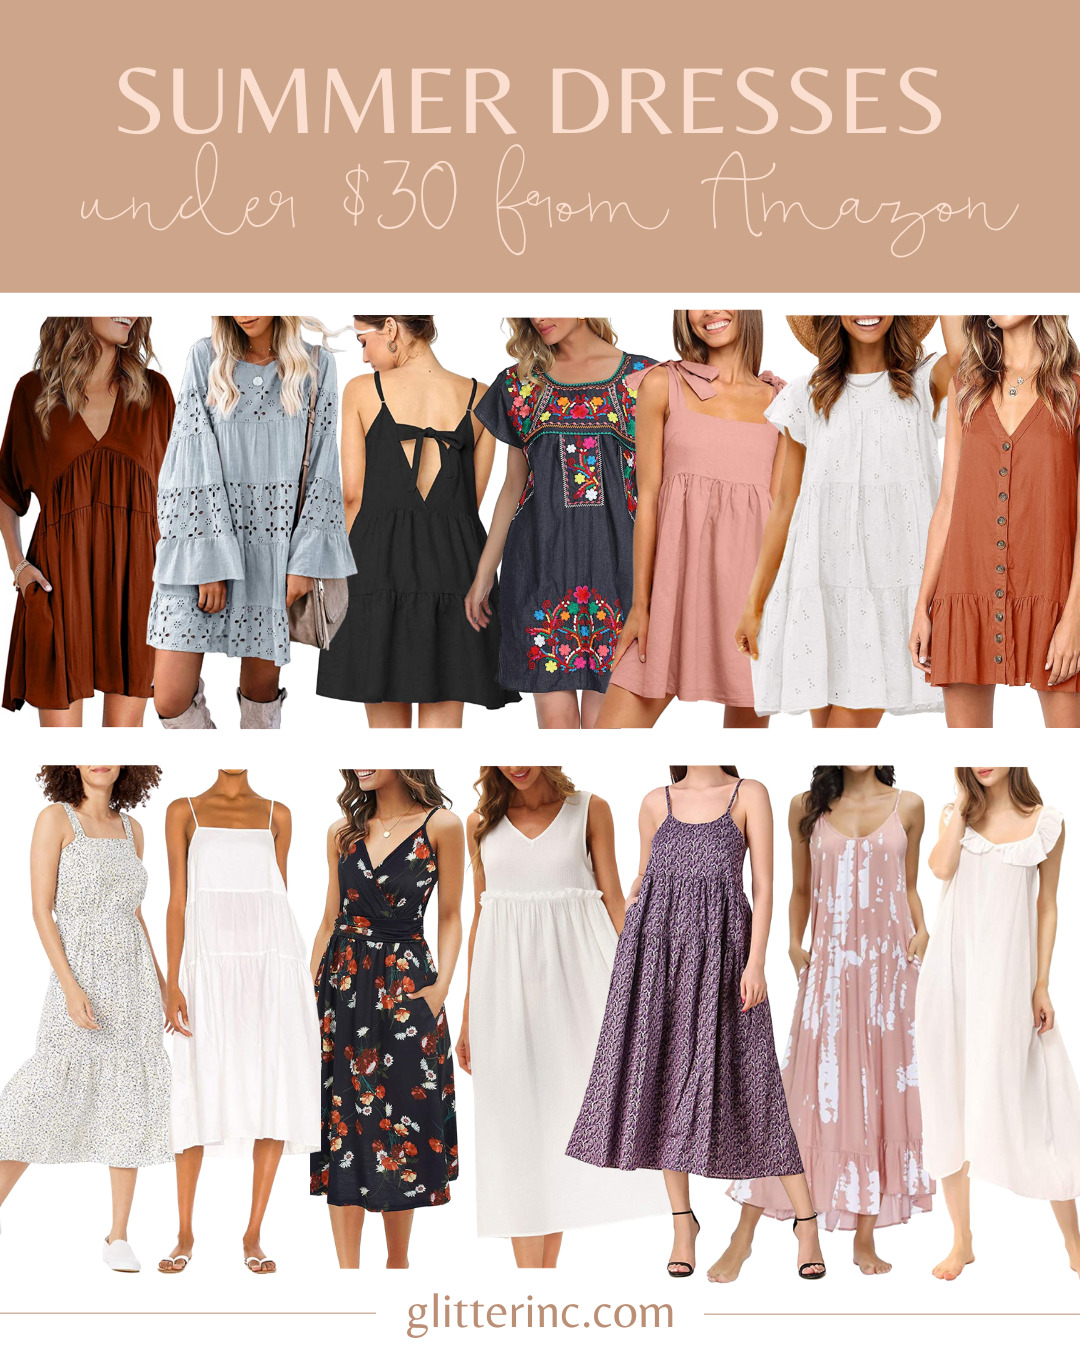 a collage of different Summer Dresses Under $30 from Amazon